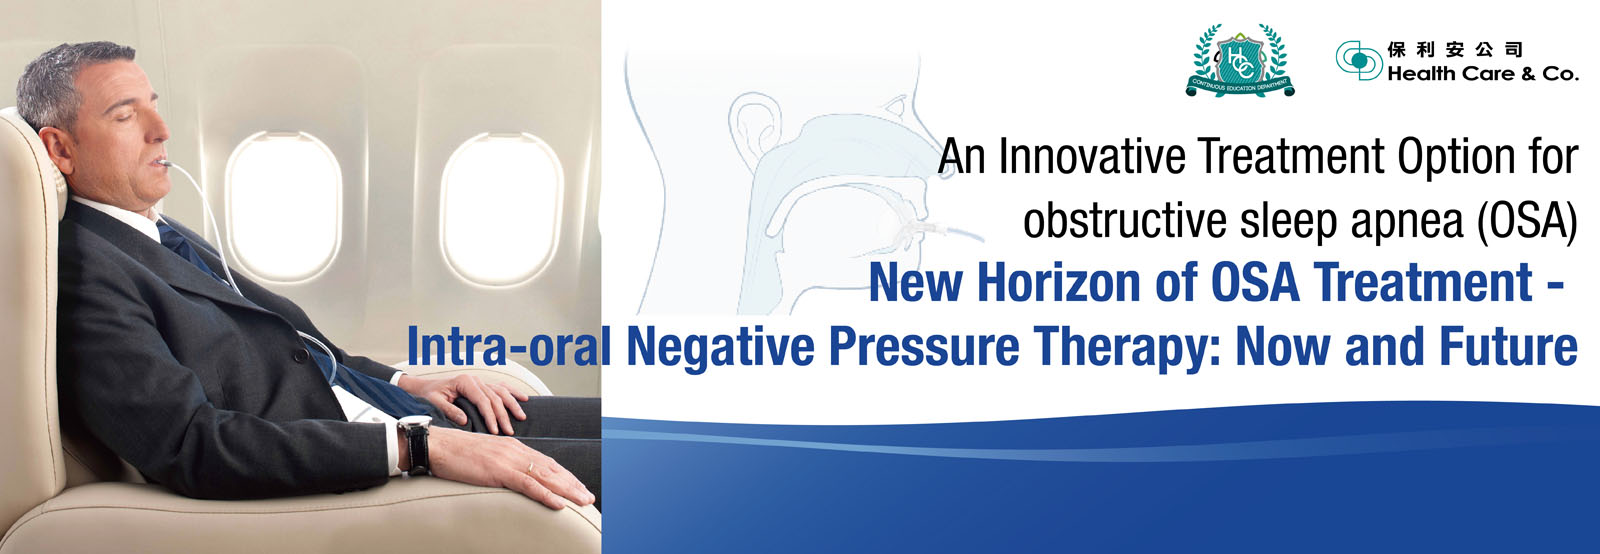 An Innovative Treatment Option for obstructive sleep apnea (OSA) New Horizon of OSA Treatment- Intra-oral Negative Pressure therapy: Now and Future